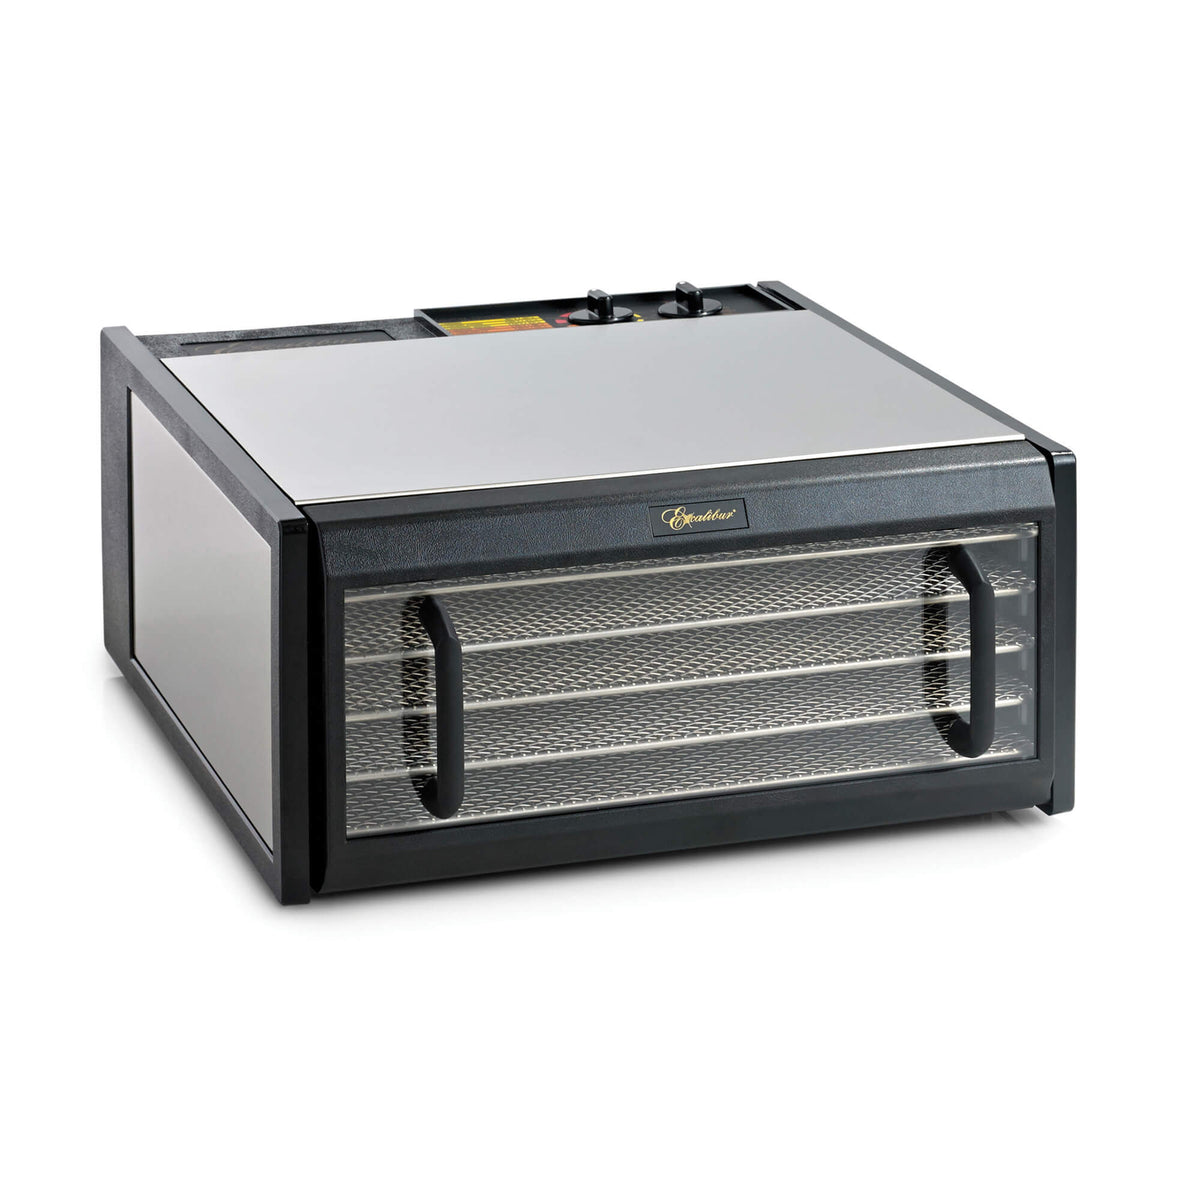 Excalibur D502CDSHD 5 tray stainless steel dehydrator with clear door closed.